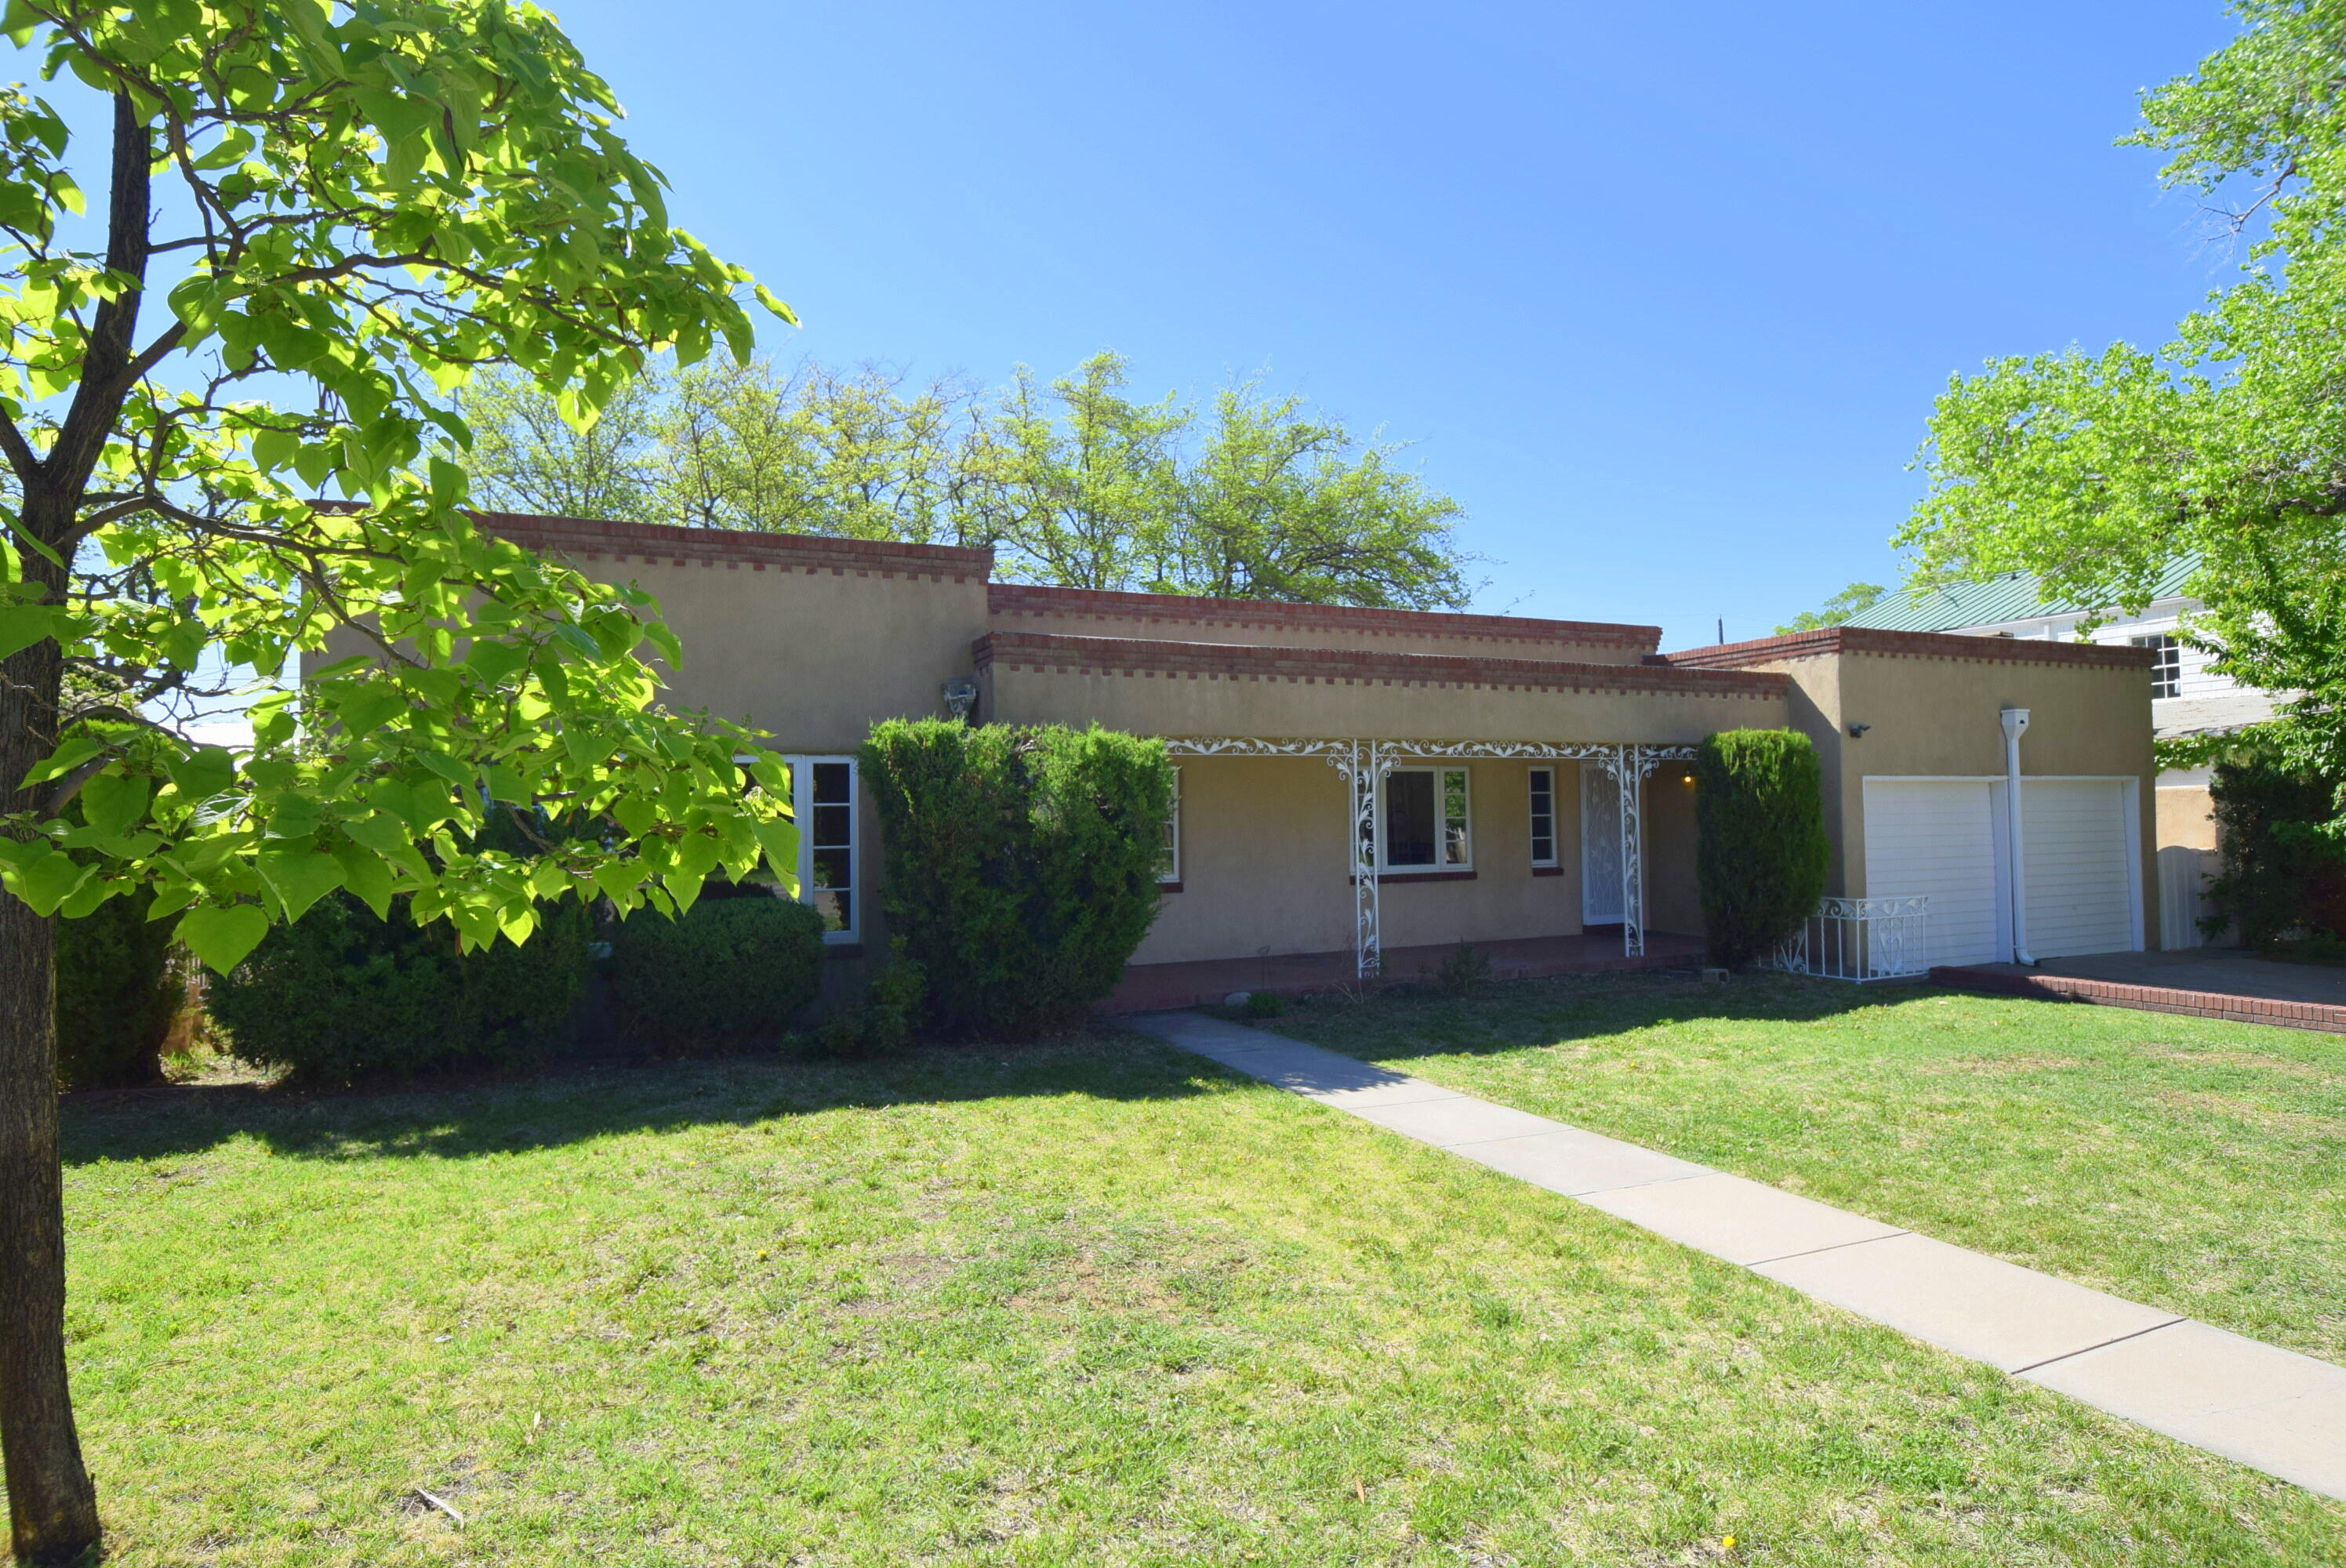 Territorial Style Home located in the heart of Nob Hill!  Beautiful and convenient location near UNM, Shopping, Restaurants, Schools &  Hospitals.  Updated Single Story 4 Bedroom home has a large Living room w/ gleaming Hardwood floors, Coved Ceilings & Charming fireplace.  Large Dining room has picture window, Hardwood floors  perfect for entertaining!  Updated Kitchen includes  Granite counter tops, Stainless steel appliances, light & plumbing fixtures.  Don't miss the additional storage in bedrooms and hallway.  Large 4th bedroom could be a  secondary living room.  All Windows replaced in beautiful condition!  Spacious rooms are perfect for Large family!  Huge back yard with flagstone  patio.  Large Shade trees perfect for outdoor summer nights. Monte Vista Elementary blocks away.